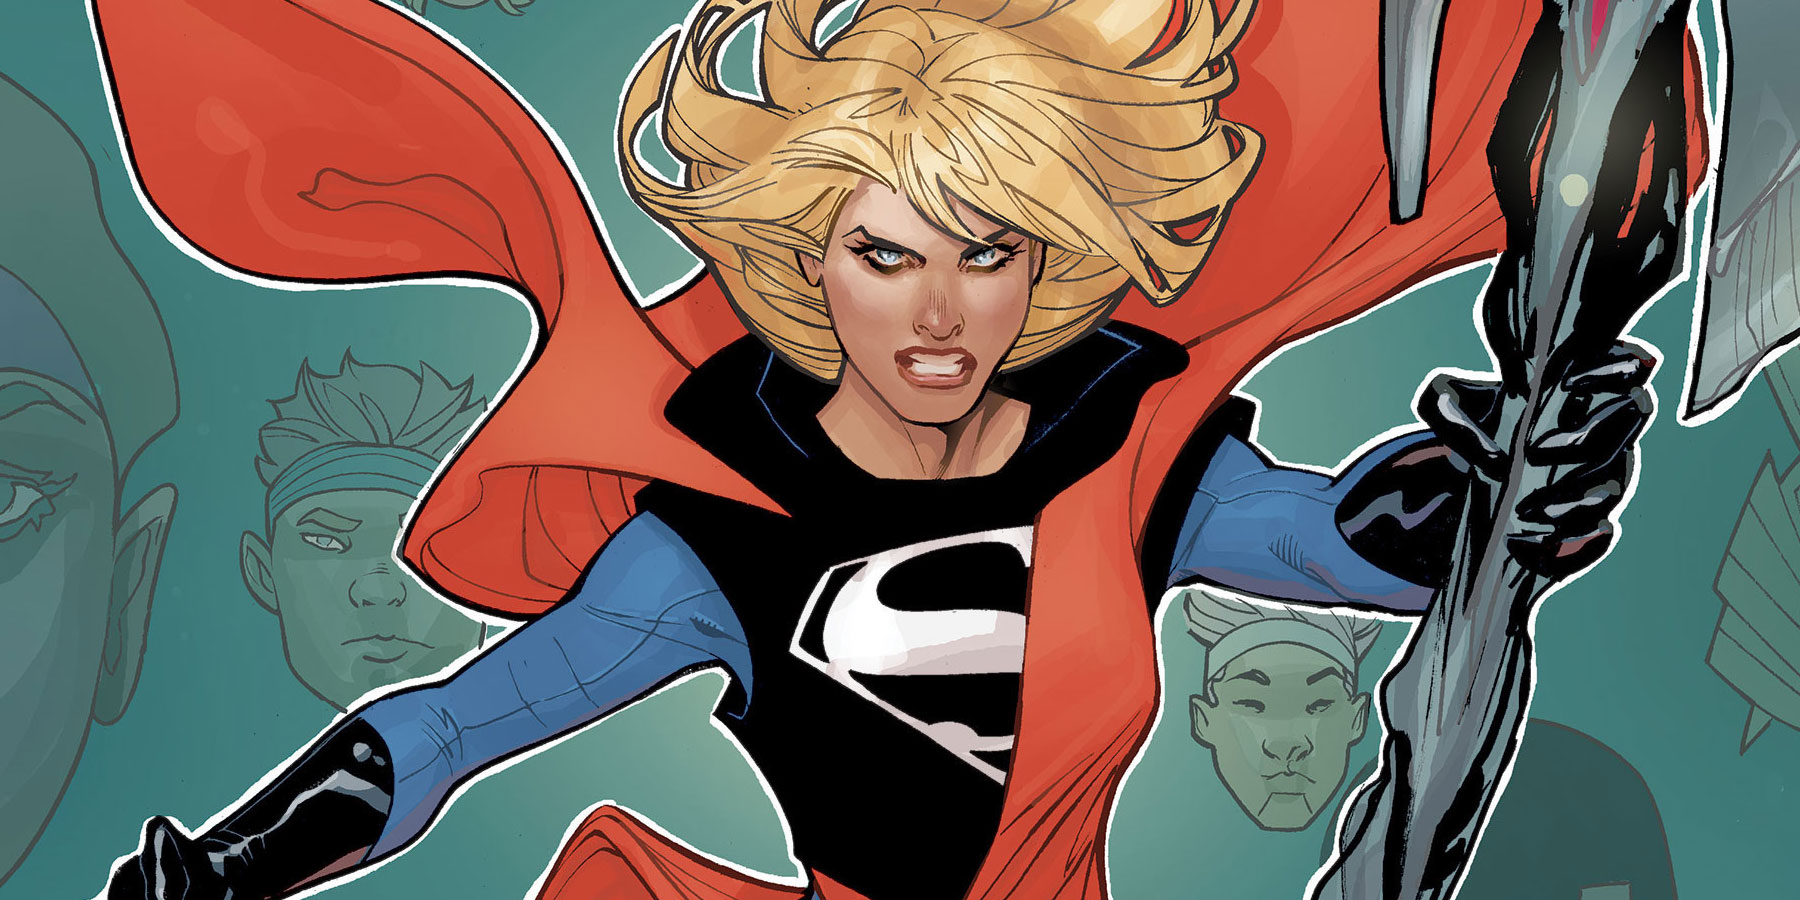 DC's Supergirl Returns With New Creative Team And Costume